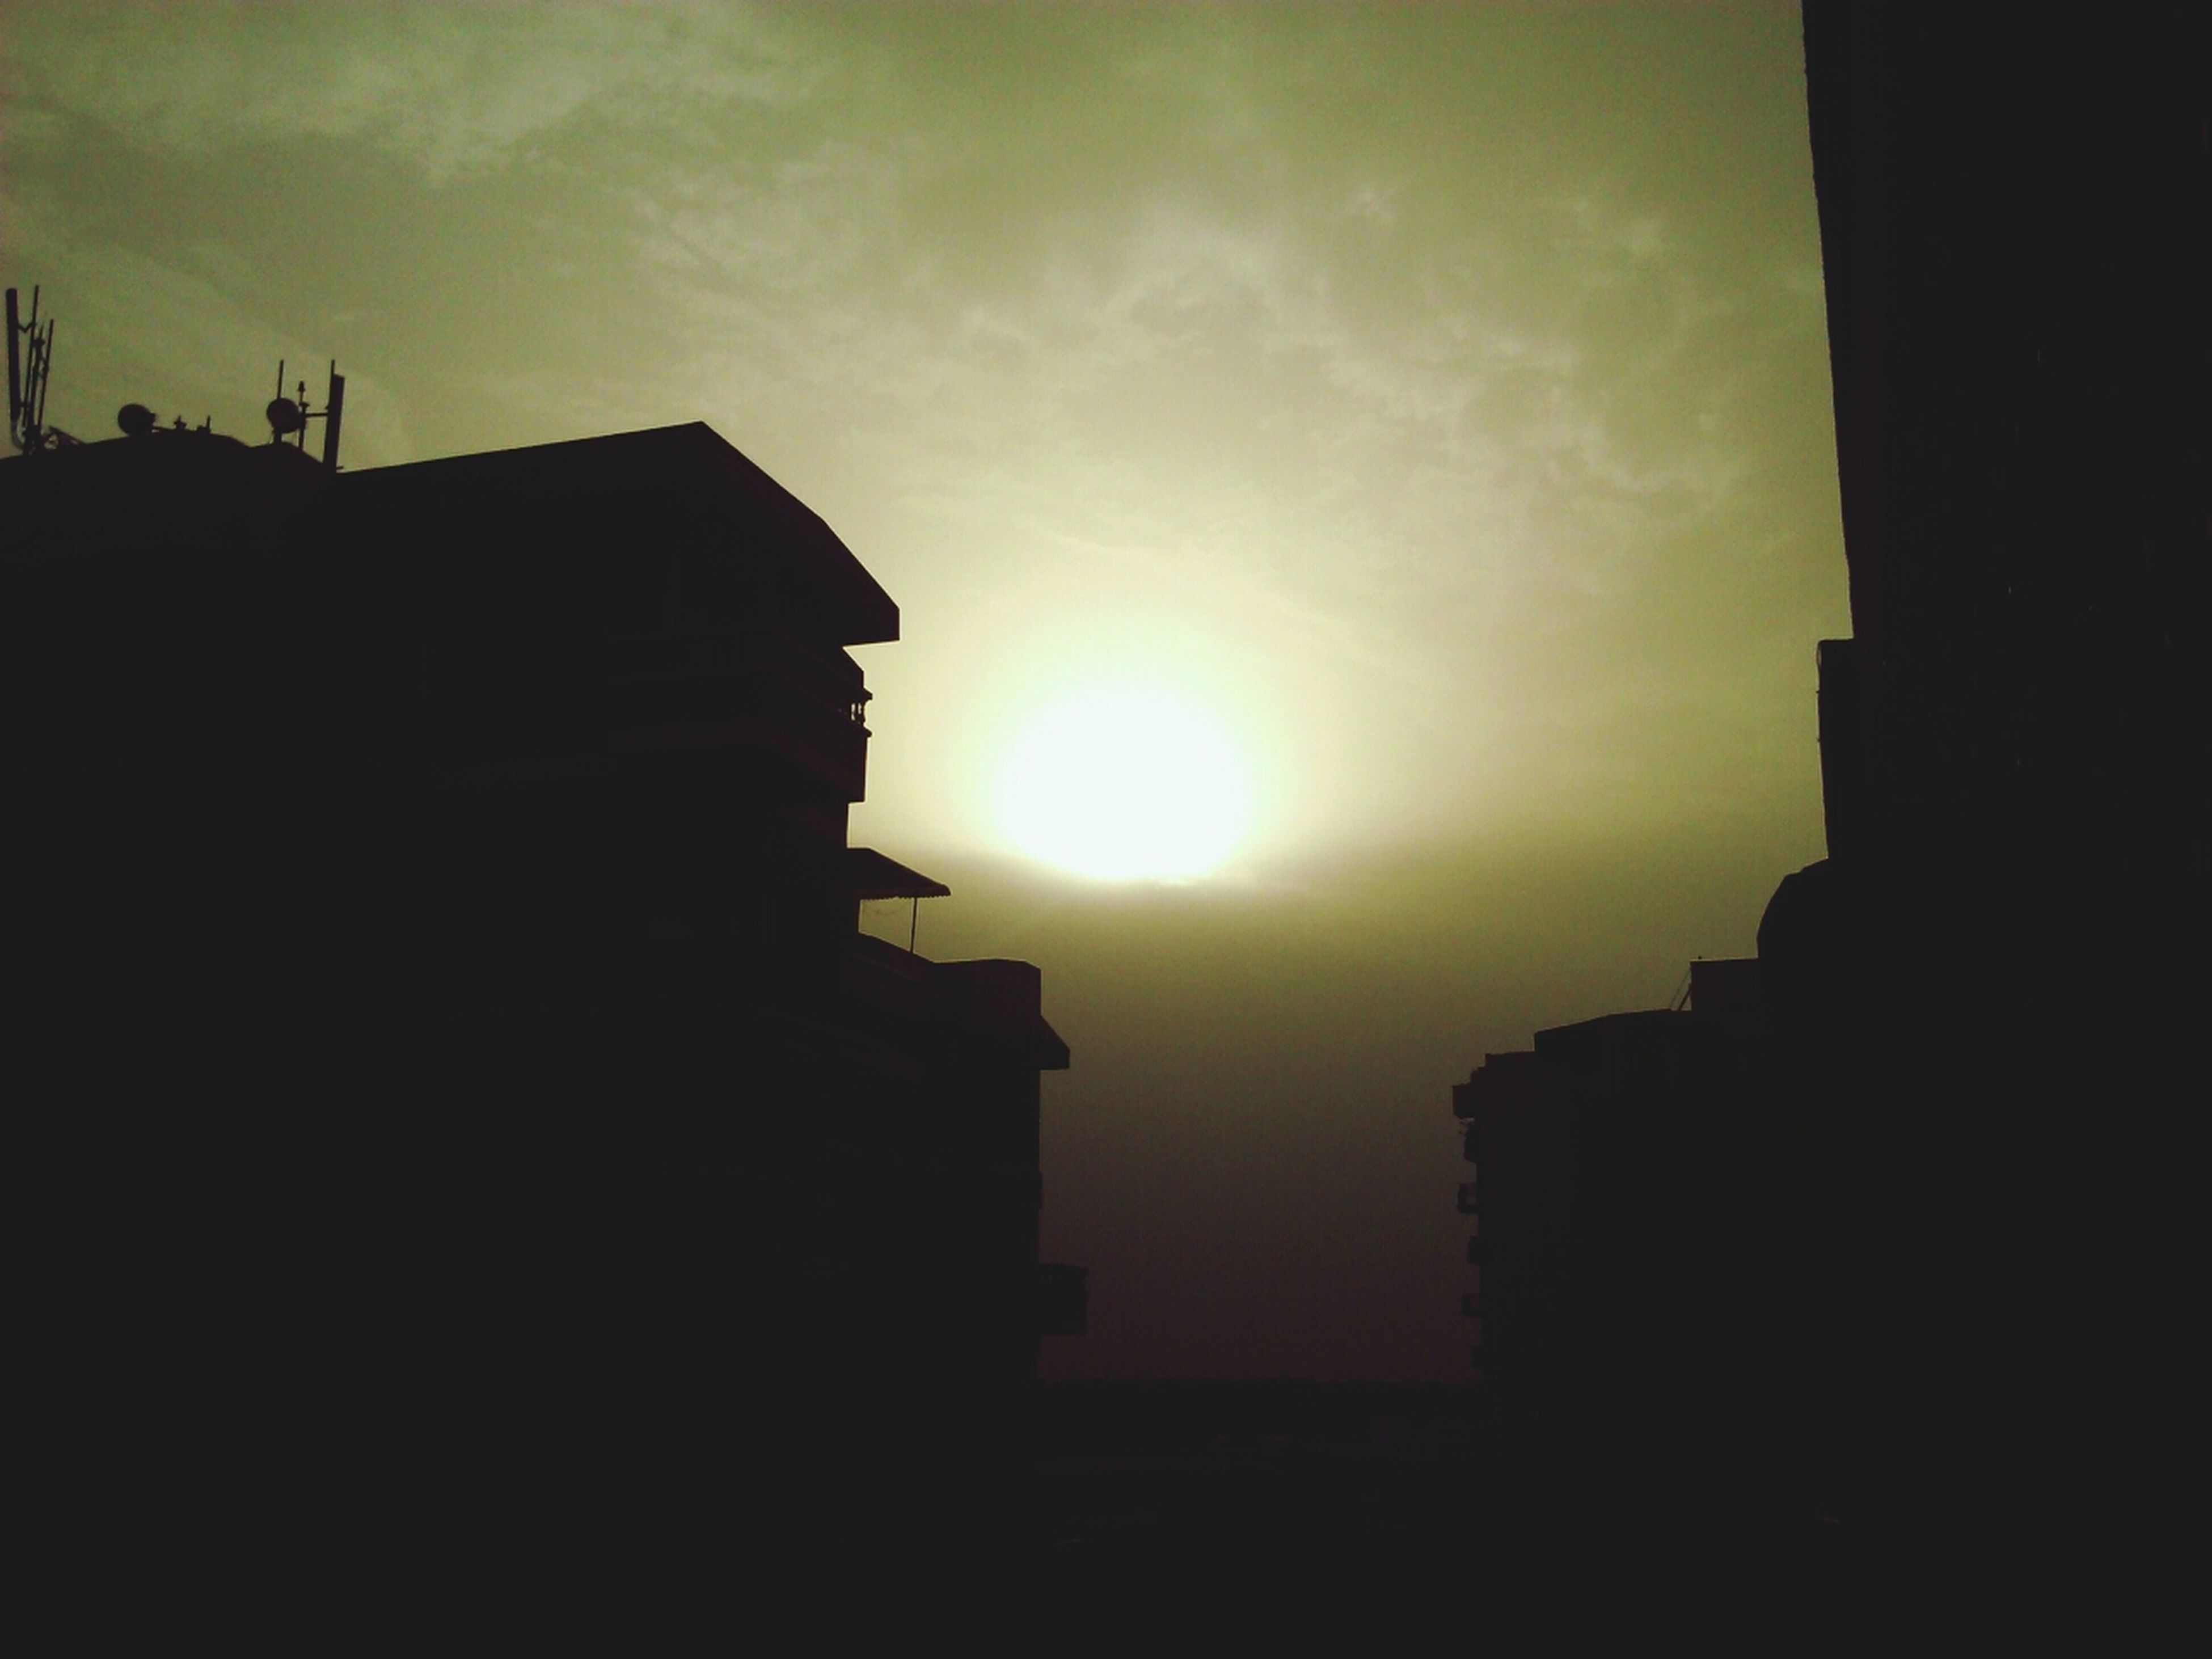 building exterior, architecture, built structure, sun, silhouette, sunset, sky, low angle view, sunlight, sunbeam, building, lens flare, residential structure, house, residential building, city, cloud - sky, outdoors, no people, cloud